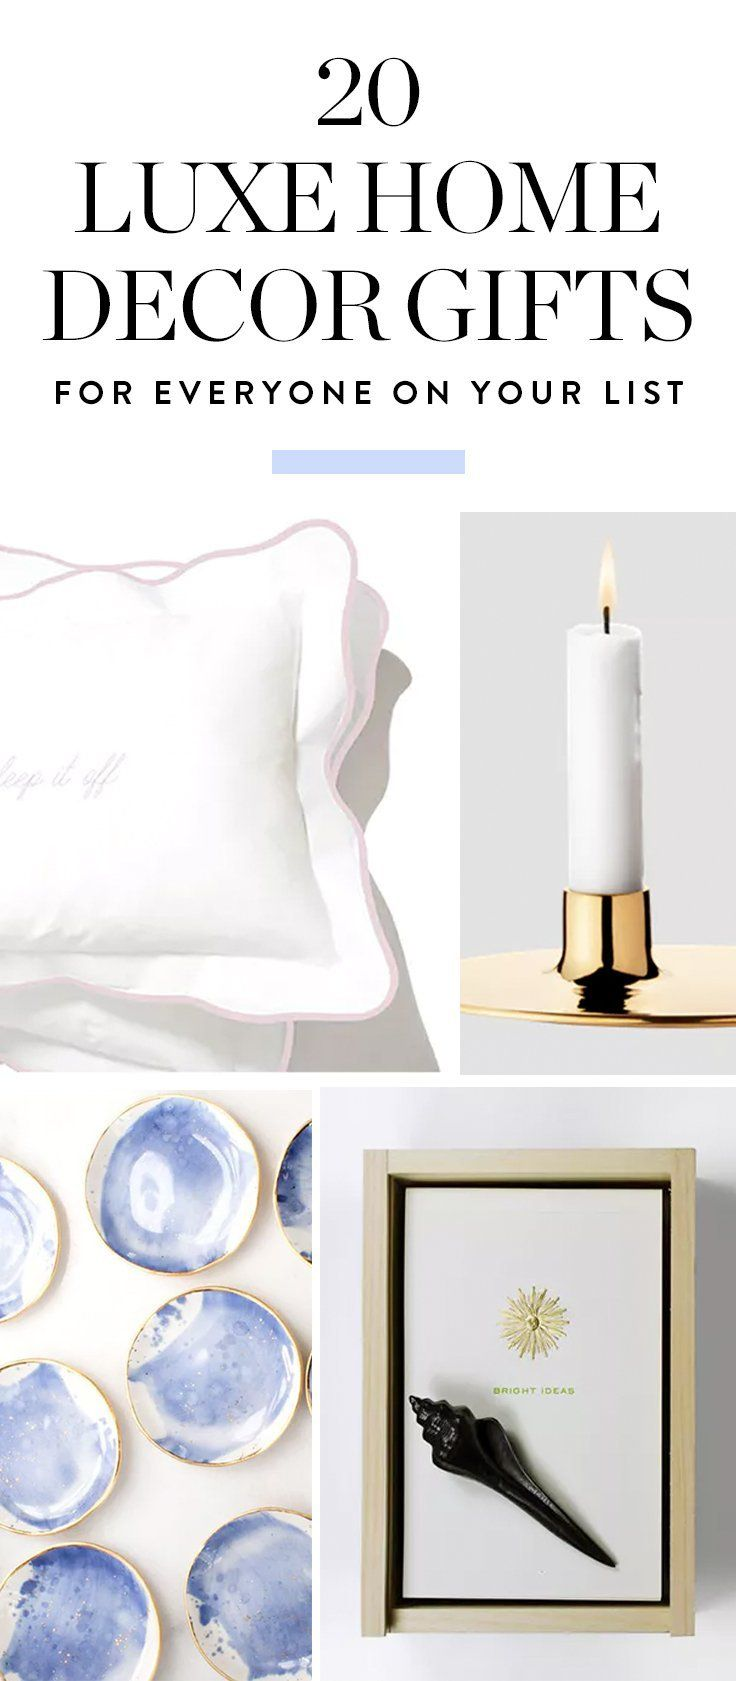 24 Luxe Home Decor Gifts for Everyone on Your Holiday List  Home